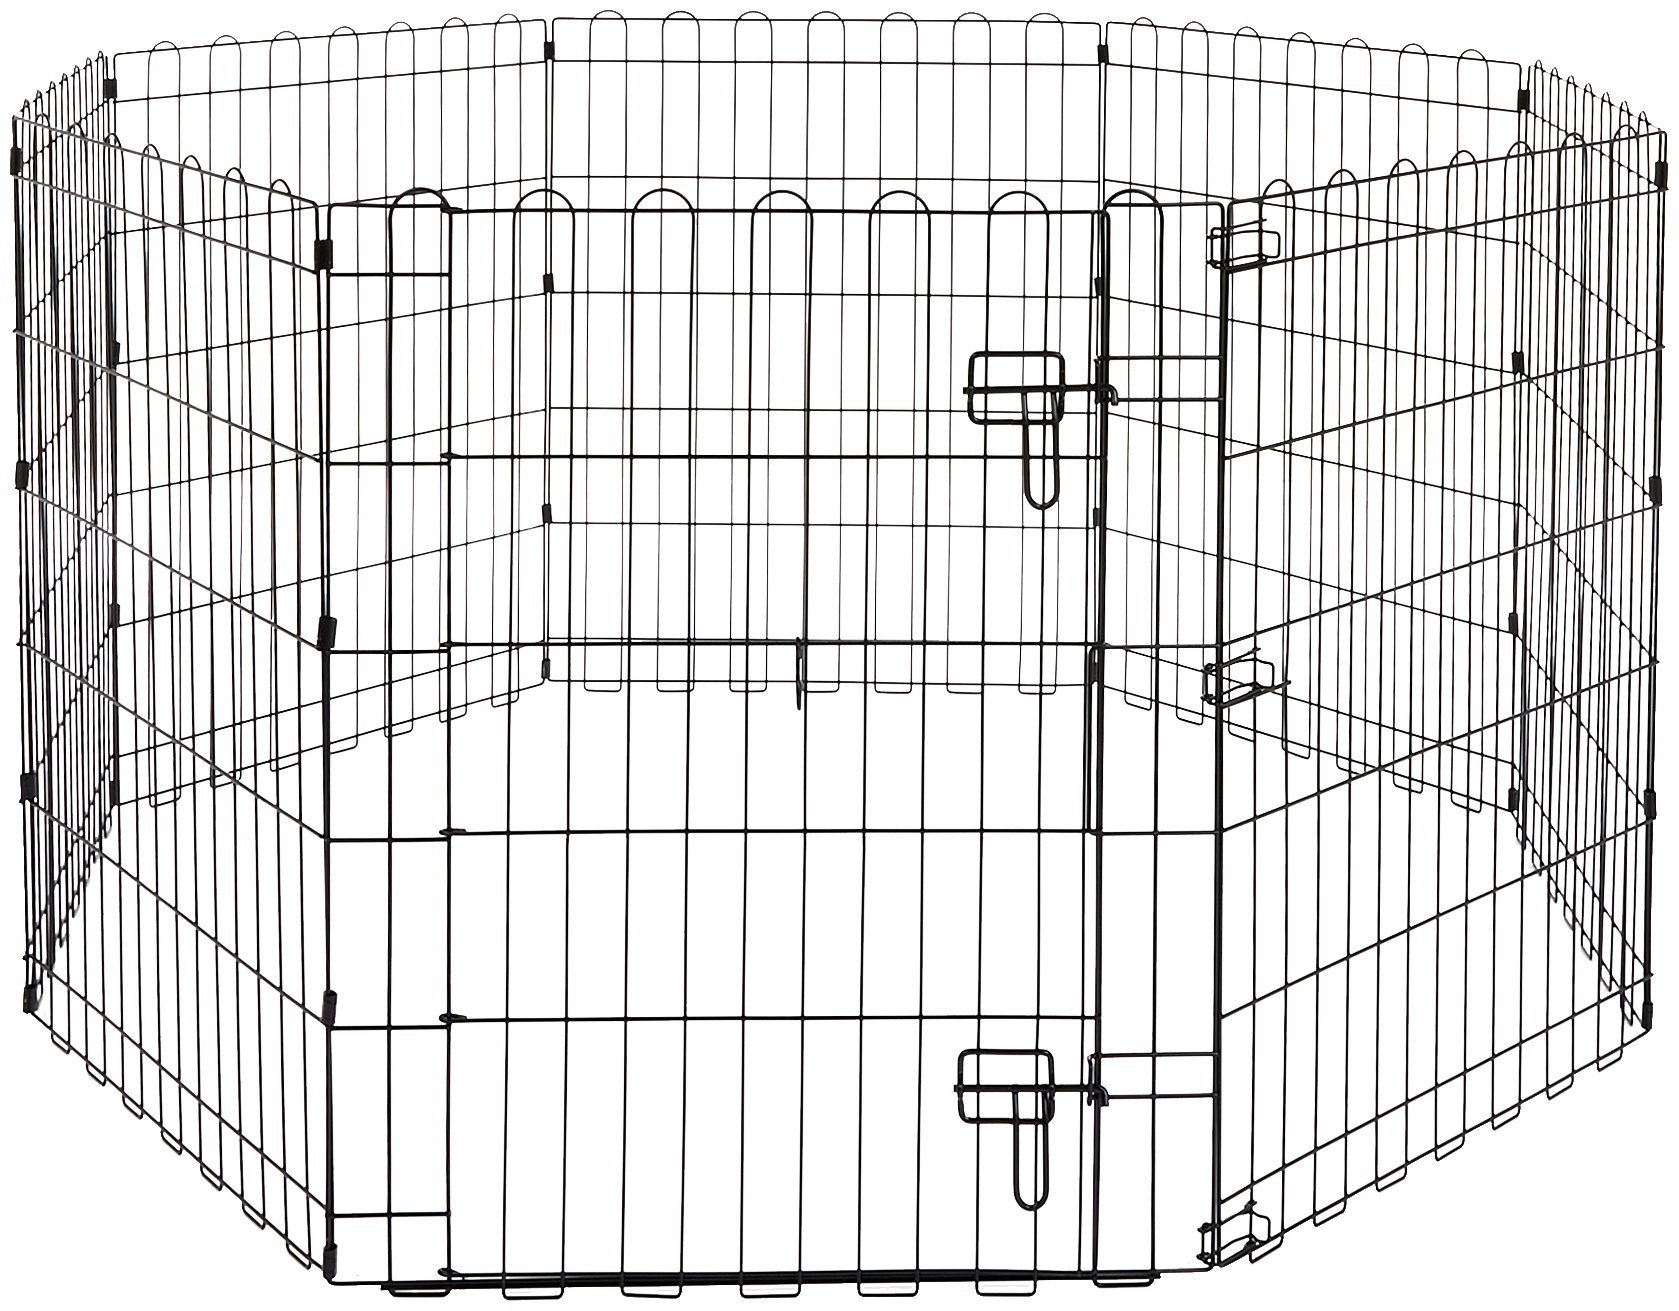 AmazonBasics Foldable Metal Pet Dog Exercise Fence Pen With Gate - 60 x 60 x 30 Inches by AmazonBasics